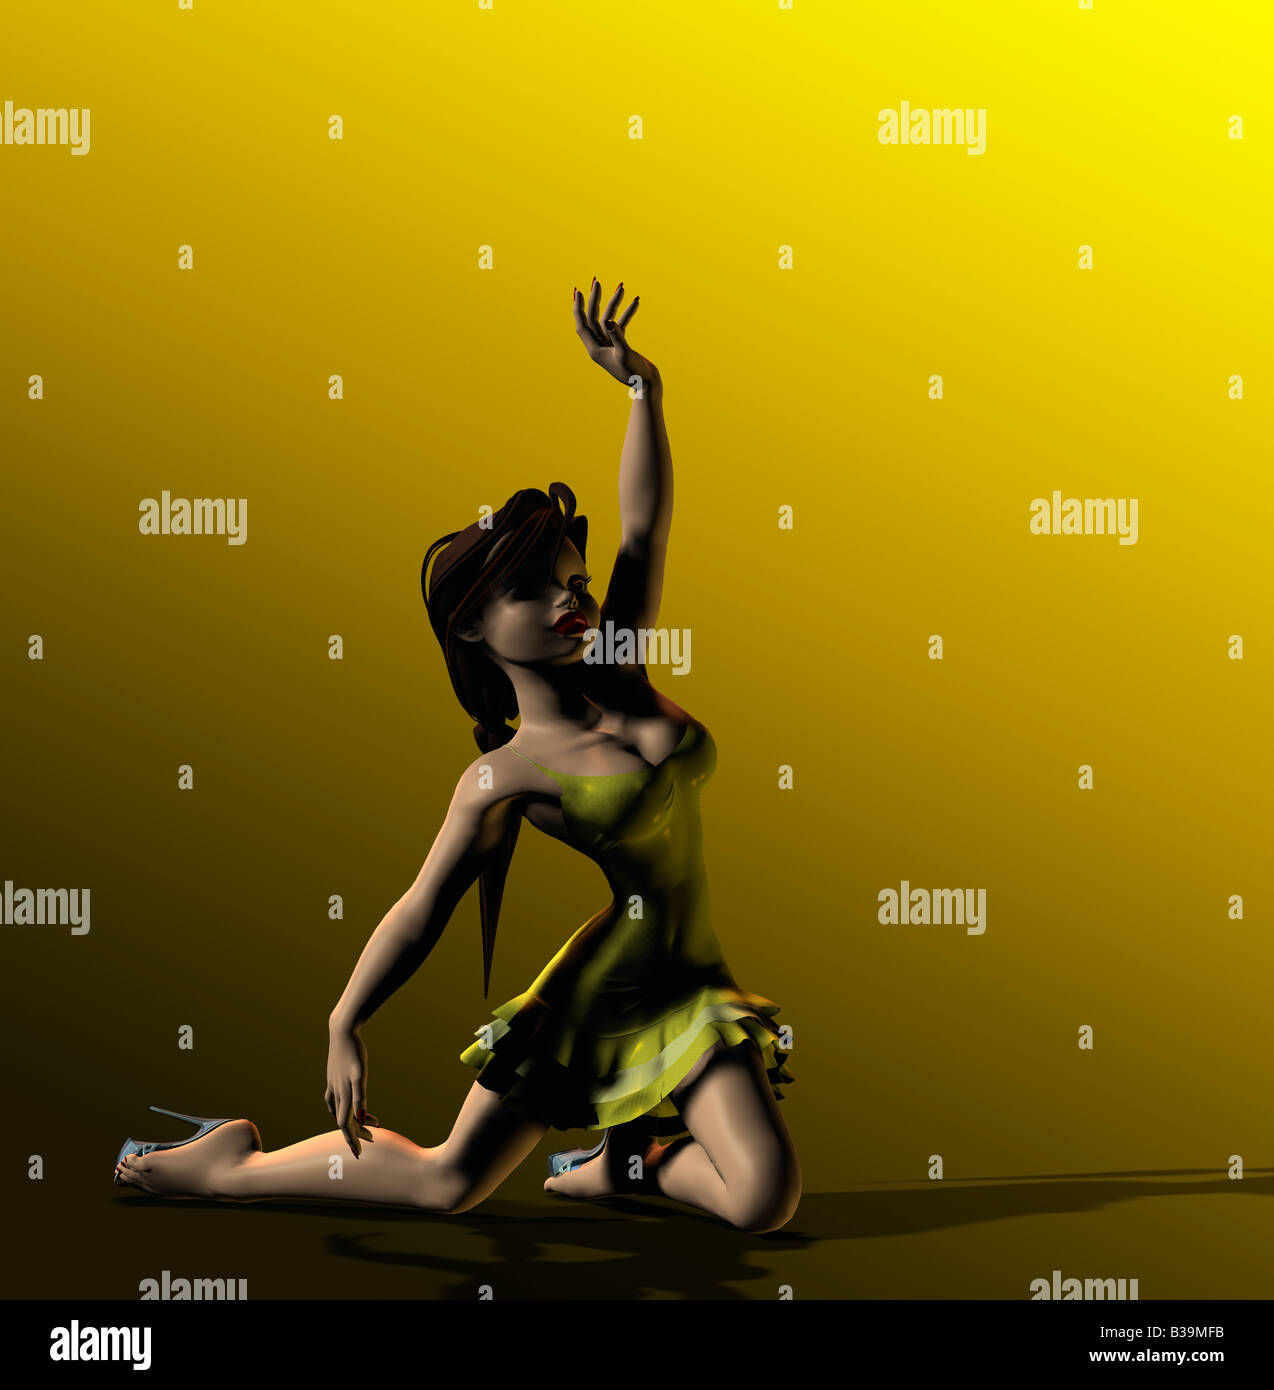 Computer Illustration Of Young Woman Dancing - Stock Image